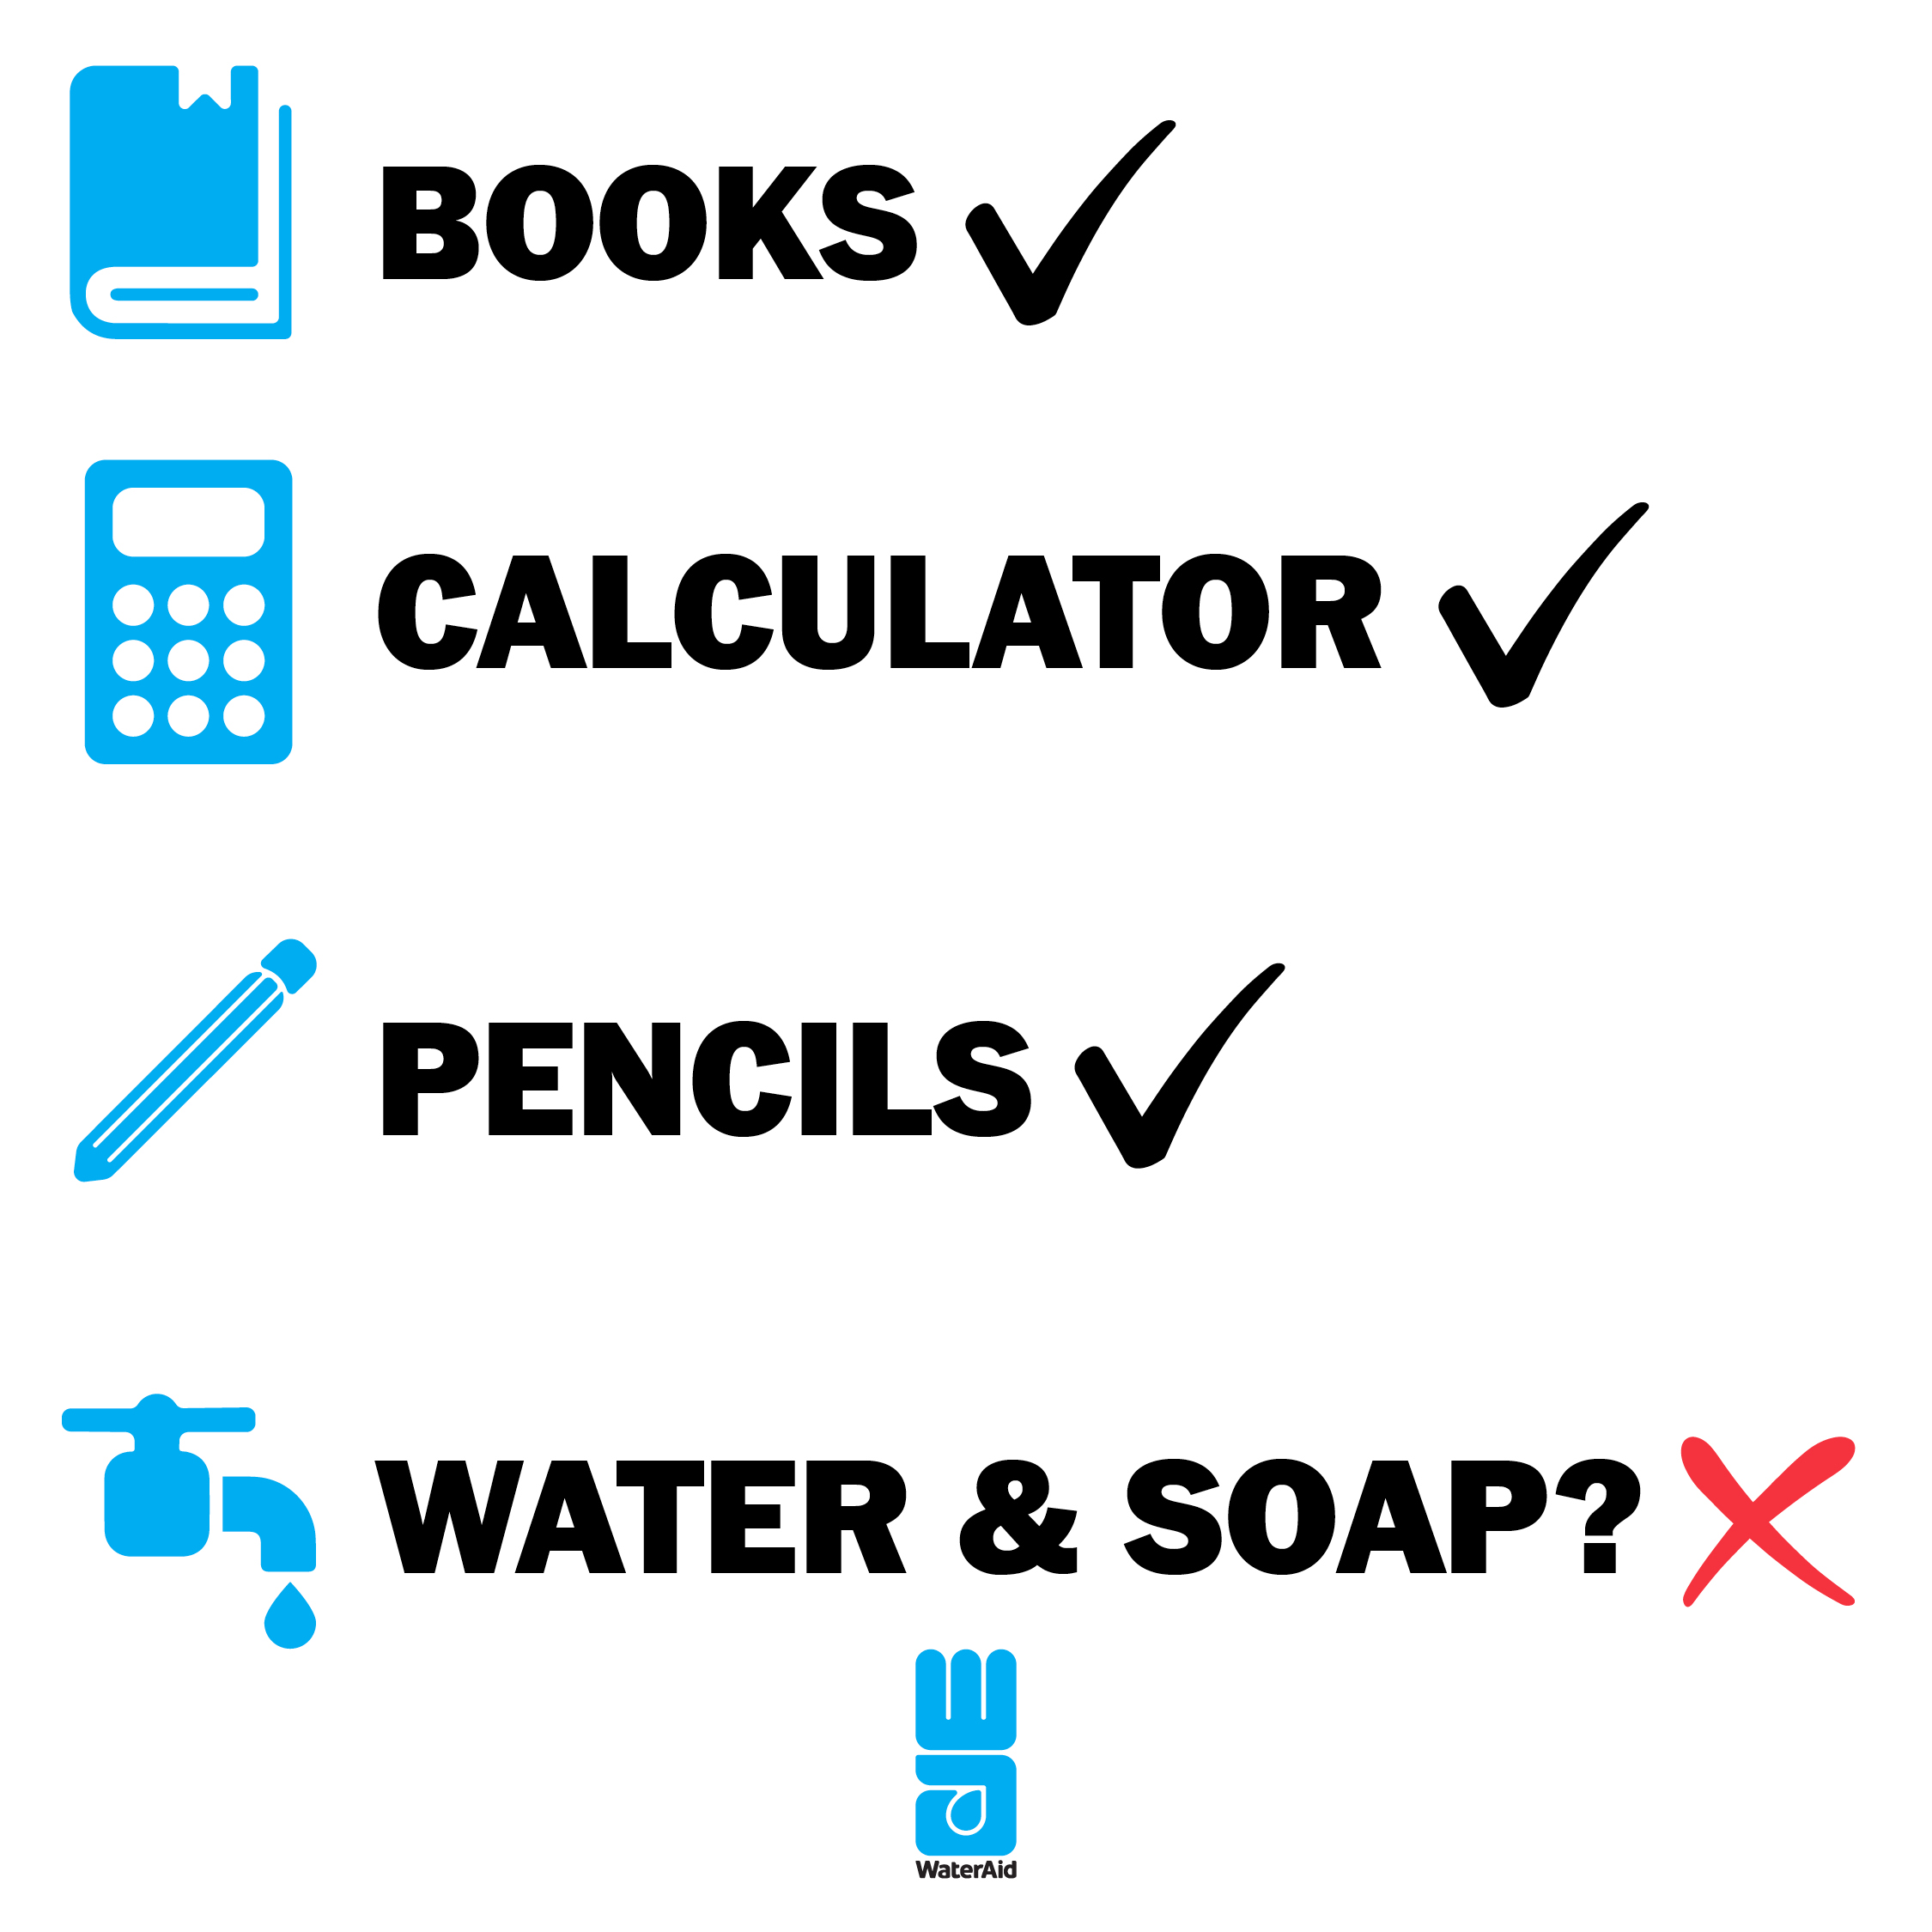 Graphics showing schools have books but not water and soap